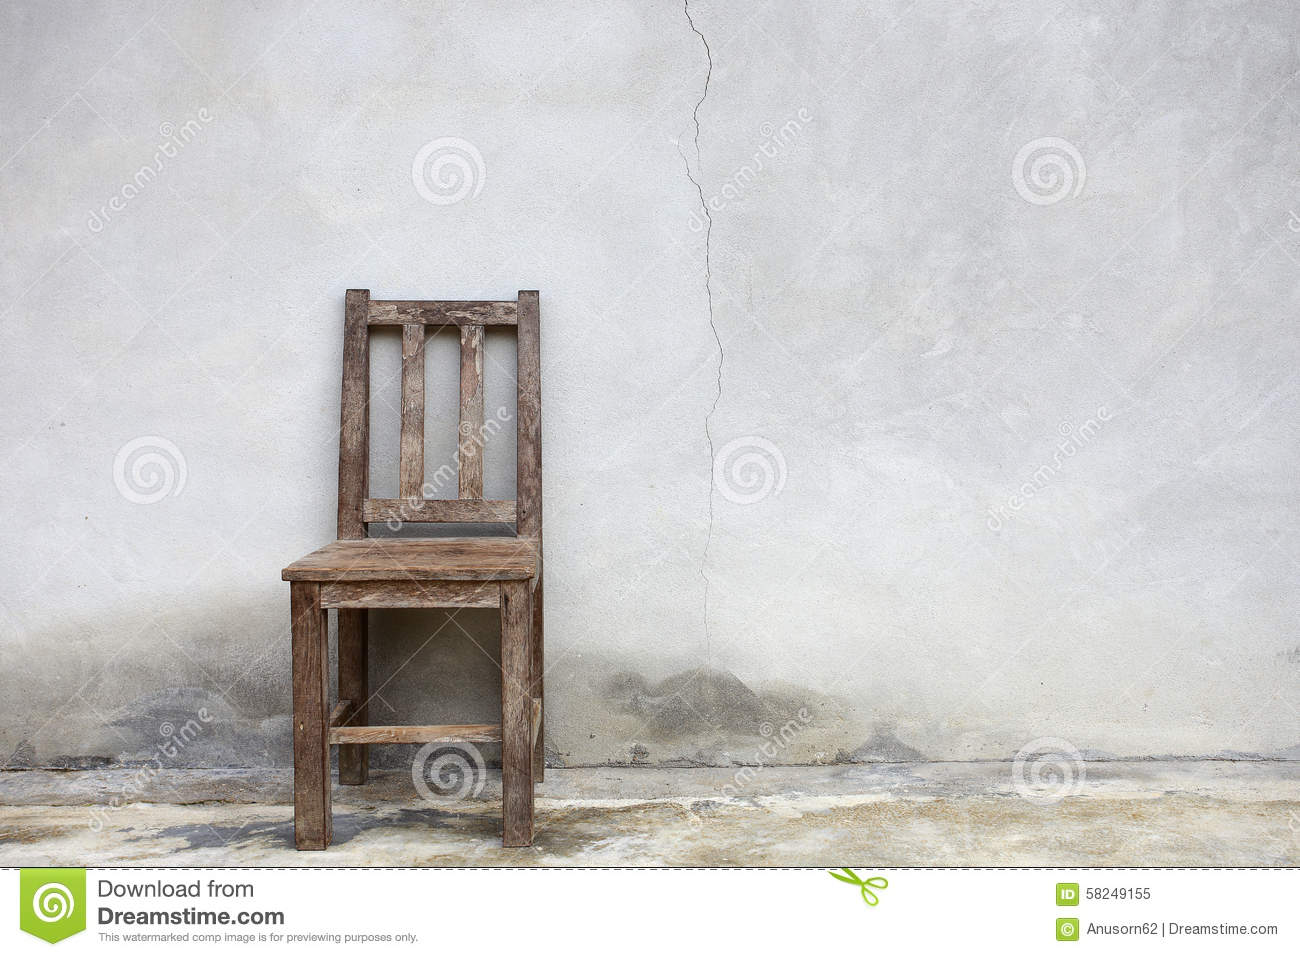 old chair against old wall stock image image of slums 58249155. Black Bedroom Furniture Sets. Home Design Ideas